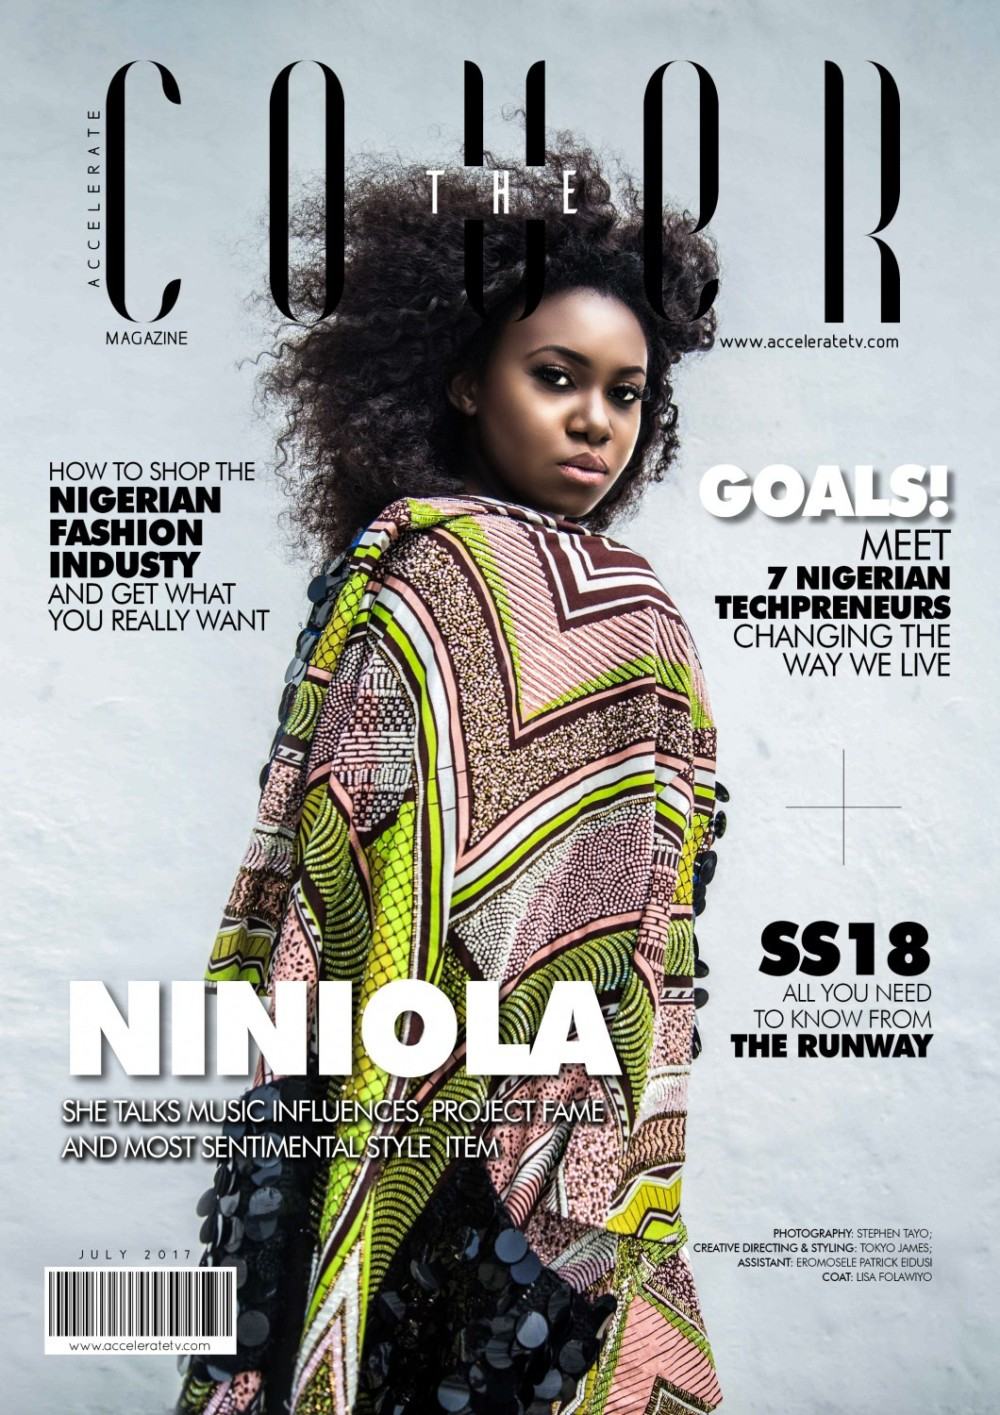 """Watch Niniola's Style Interview on Accelerate TV's July Edition of """"The Cover"""""""